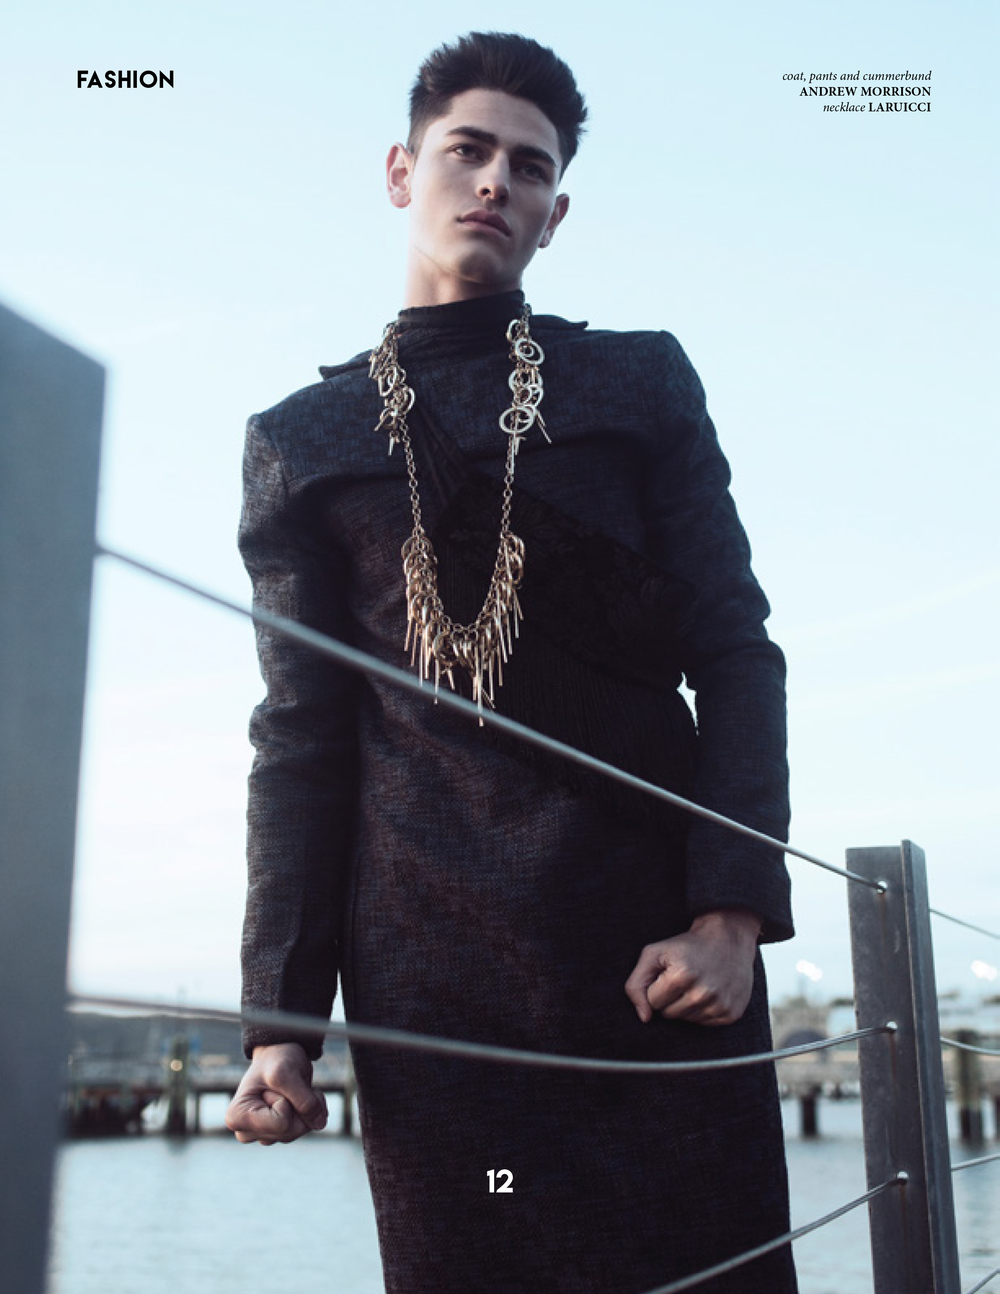 Model wears a coat by Andrew Morrison. Jewelry: Laruicci.